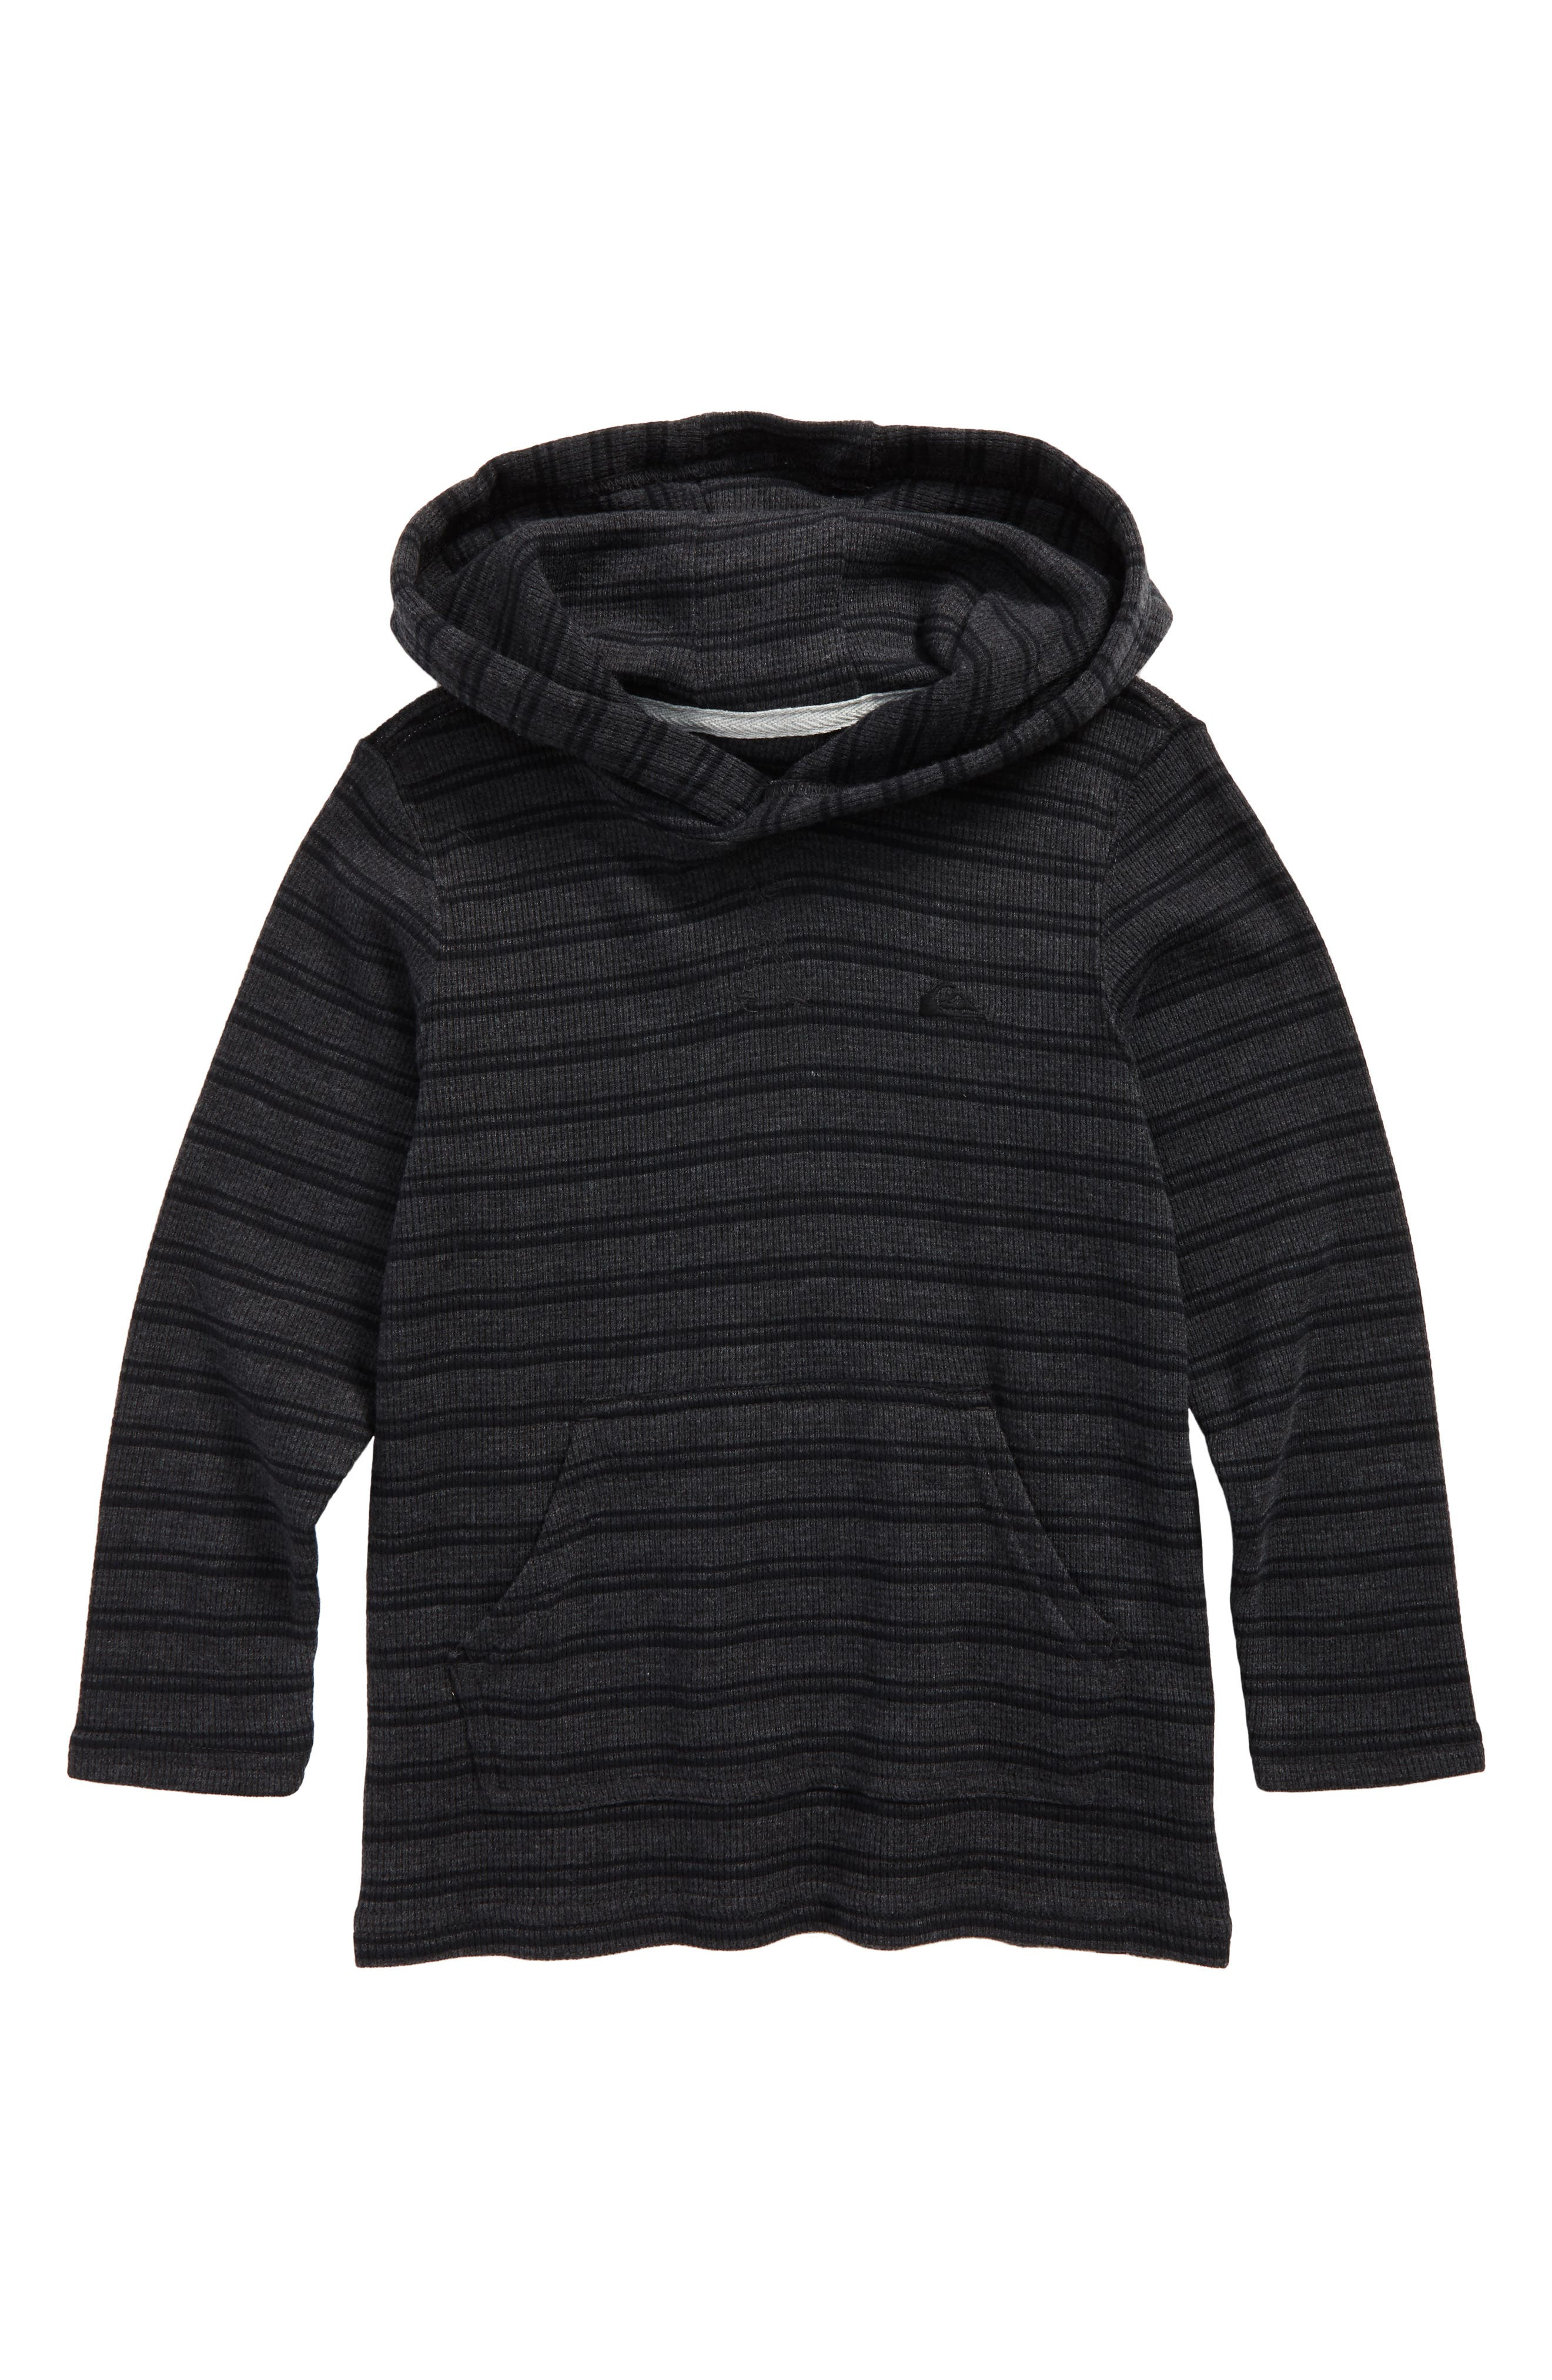 Main Image - Quiksilver Ocean Surface Thermal Hoodie (Toddler Boys & Little Boys)